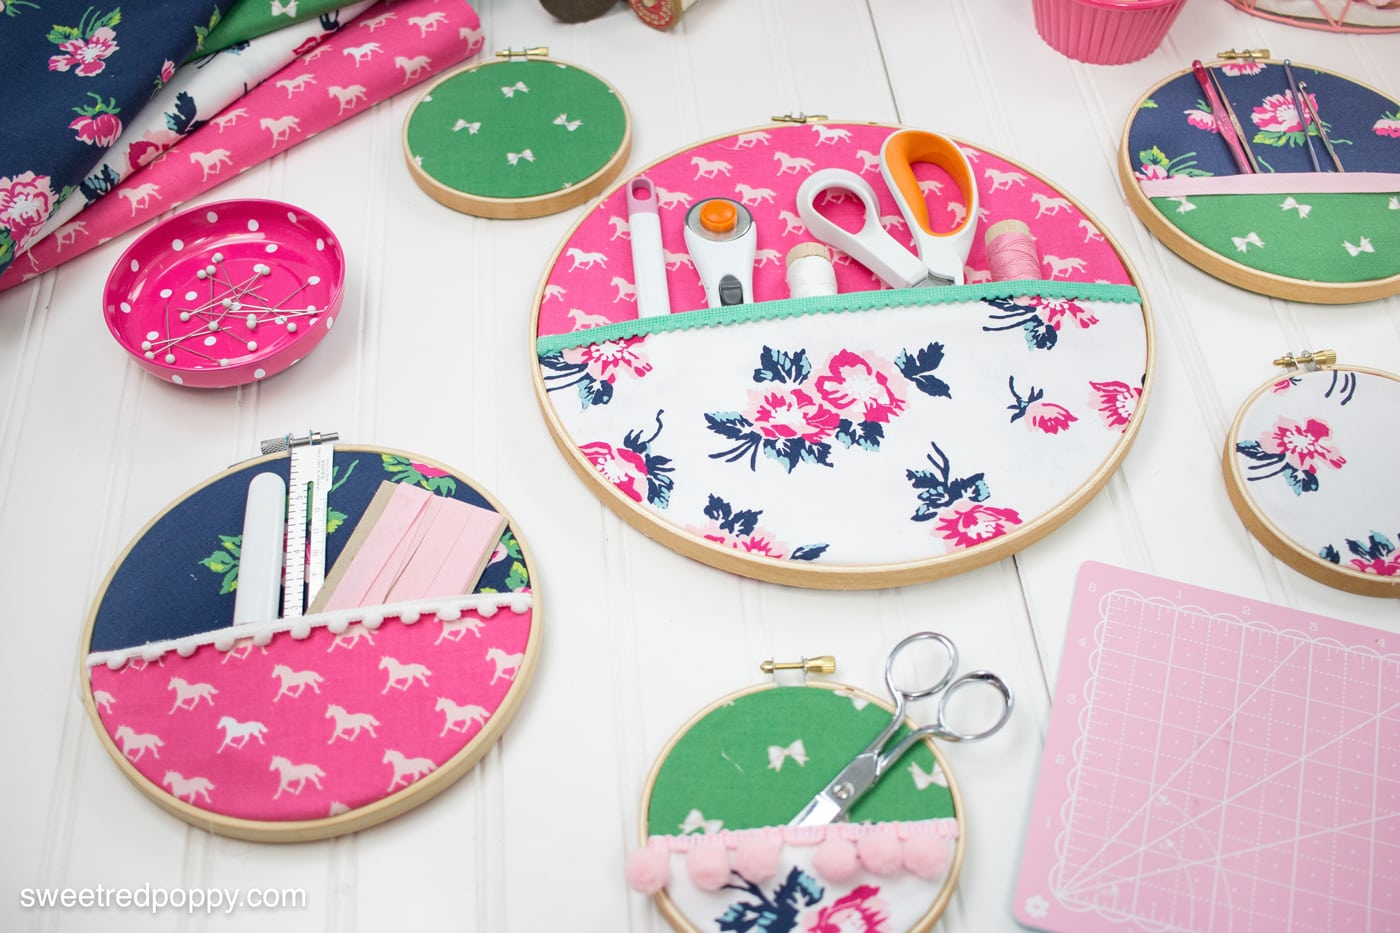 DIY Embroidery Hoop Hanging Wall Organizer